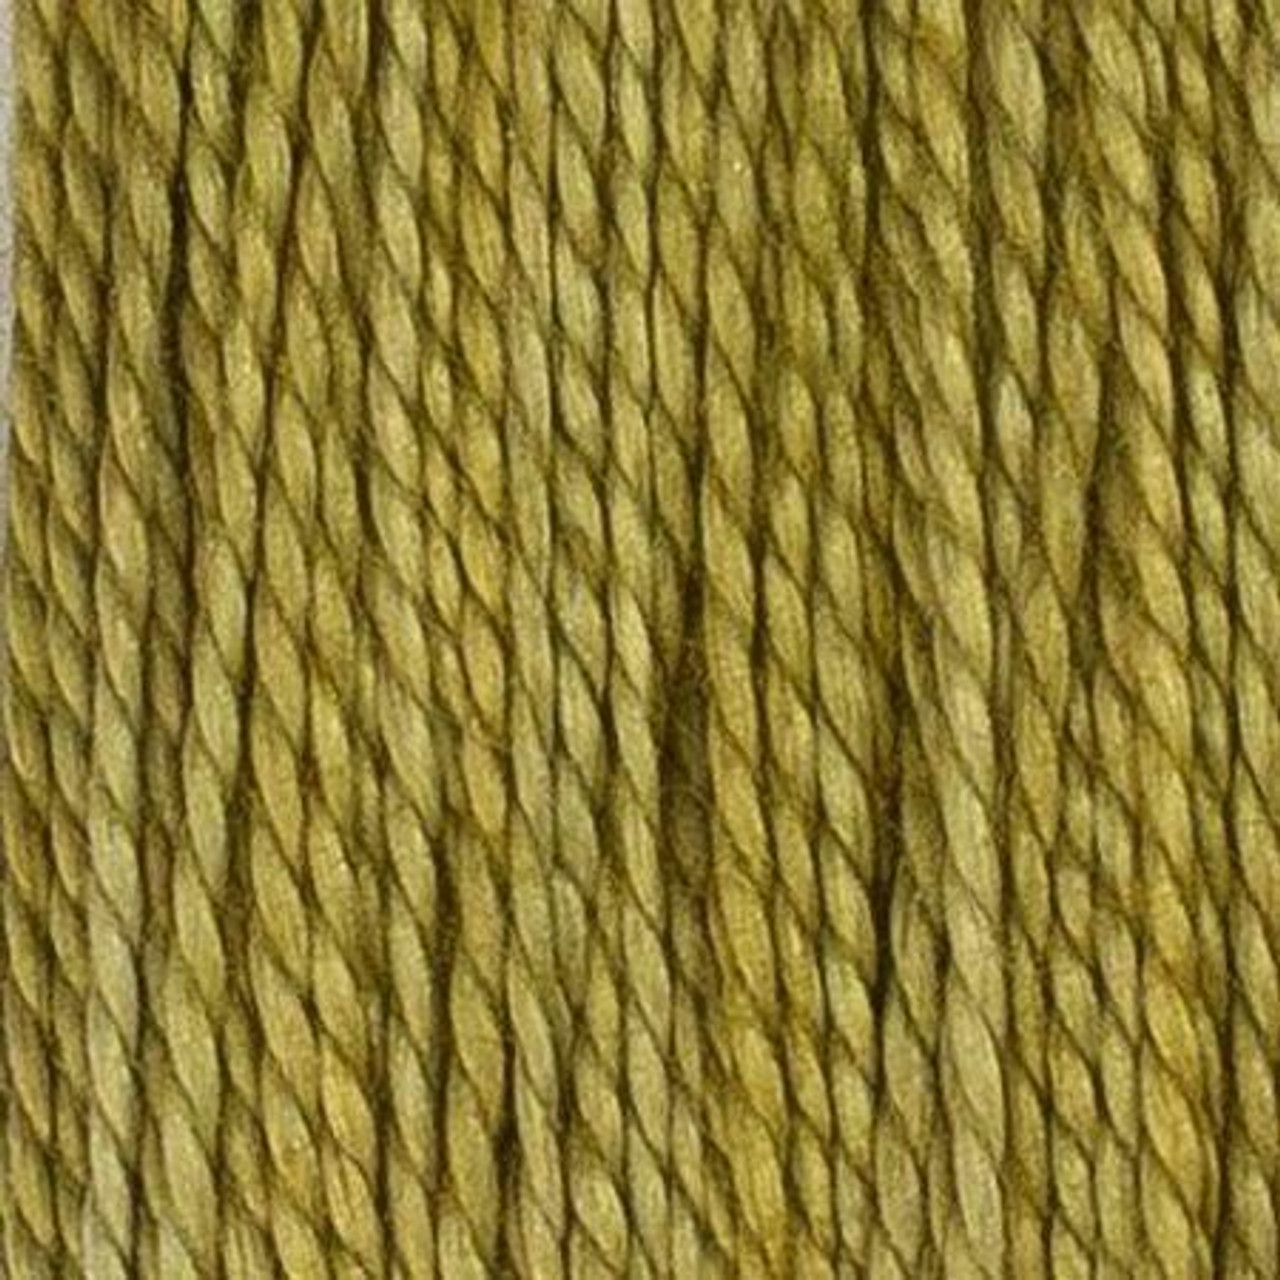 House of Embroidery : 8wt Perle Cotton - Fern (4B)